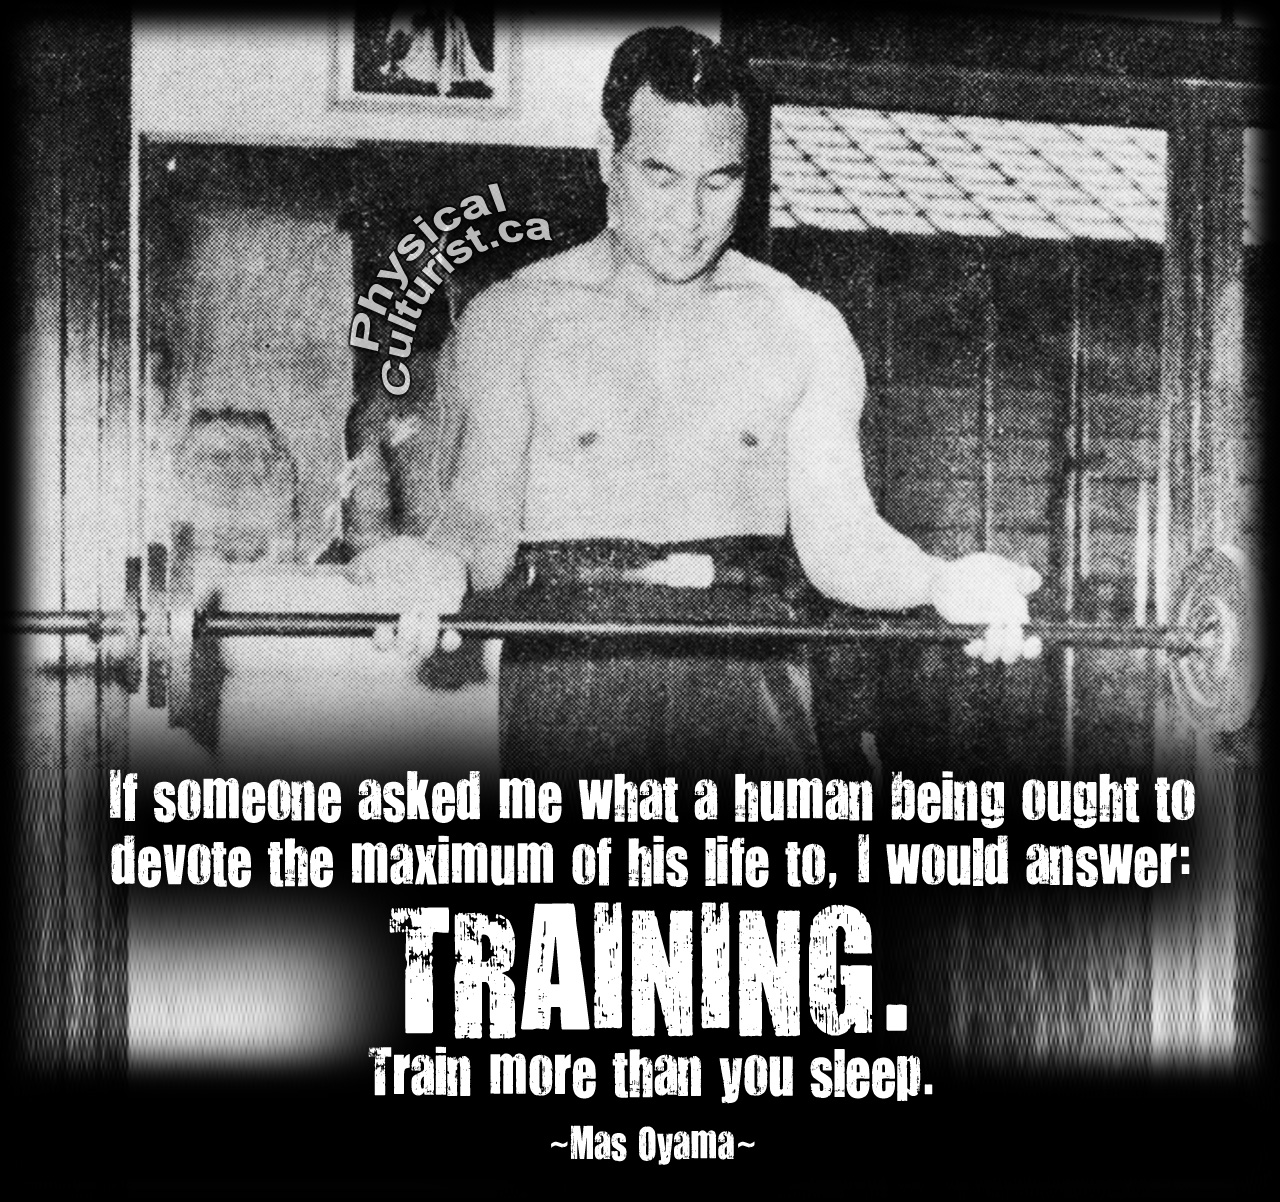 If someone asked me what a human being ought to devote the maximum of his life to, I would answer: TRAINING. Train more than you sleep. - Mas Oyama